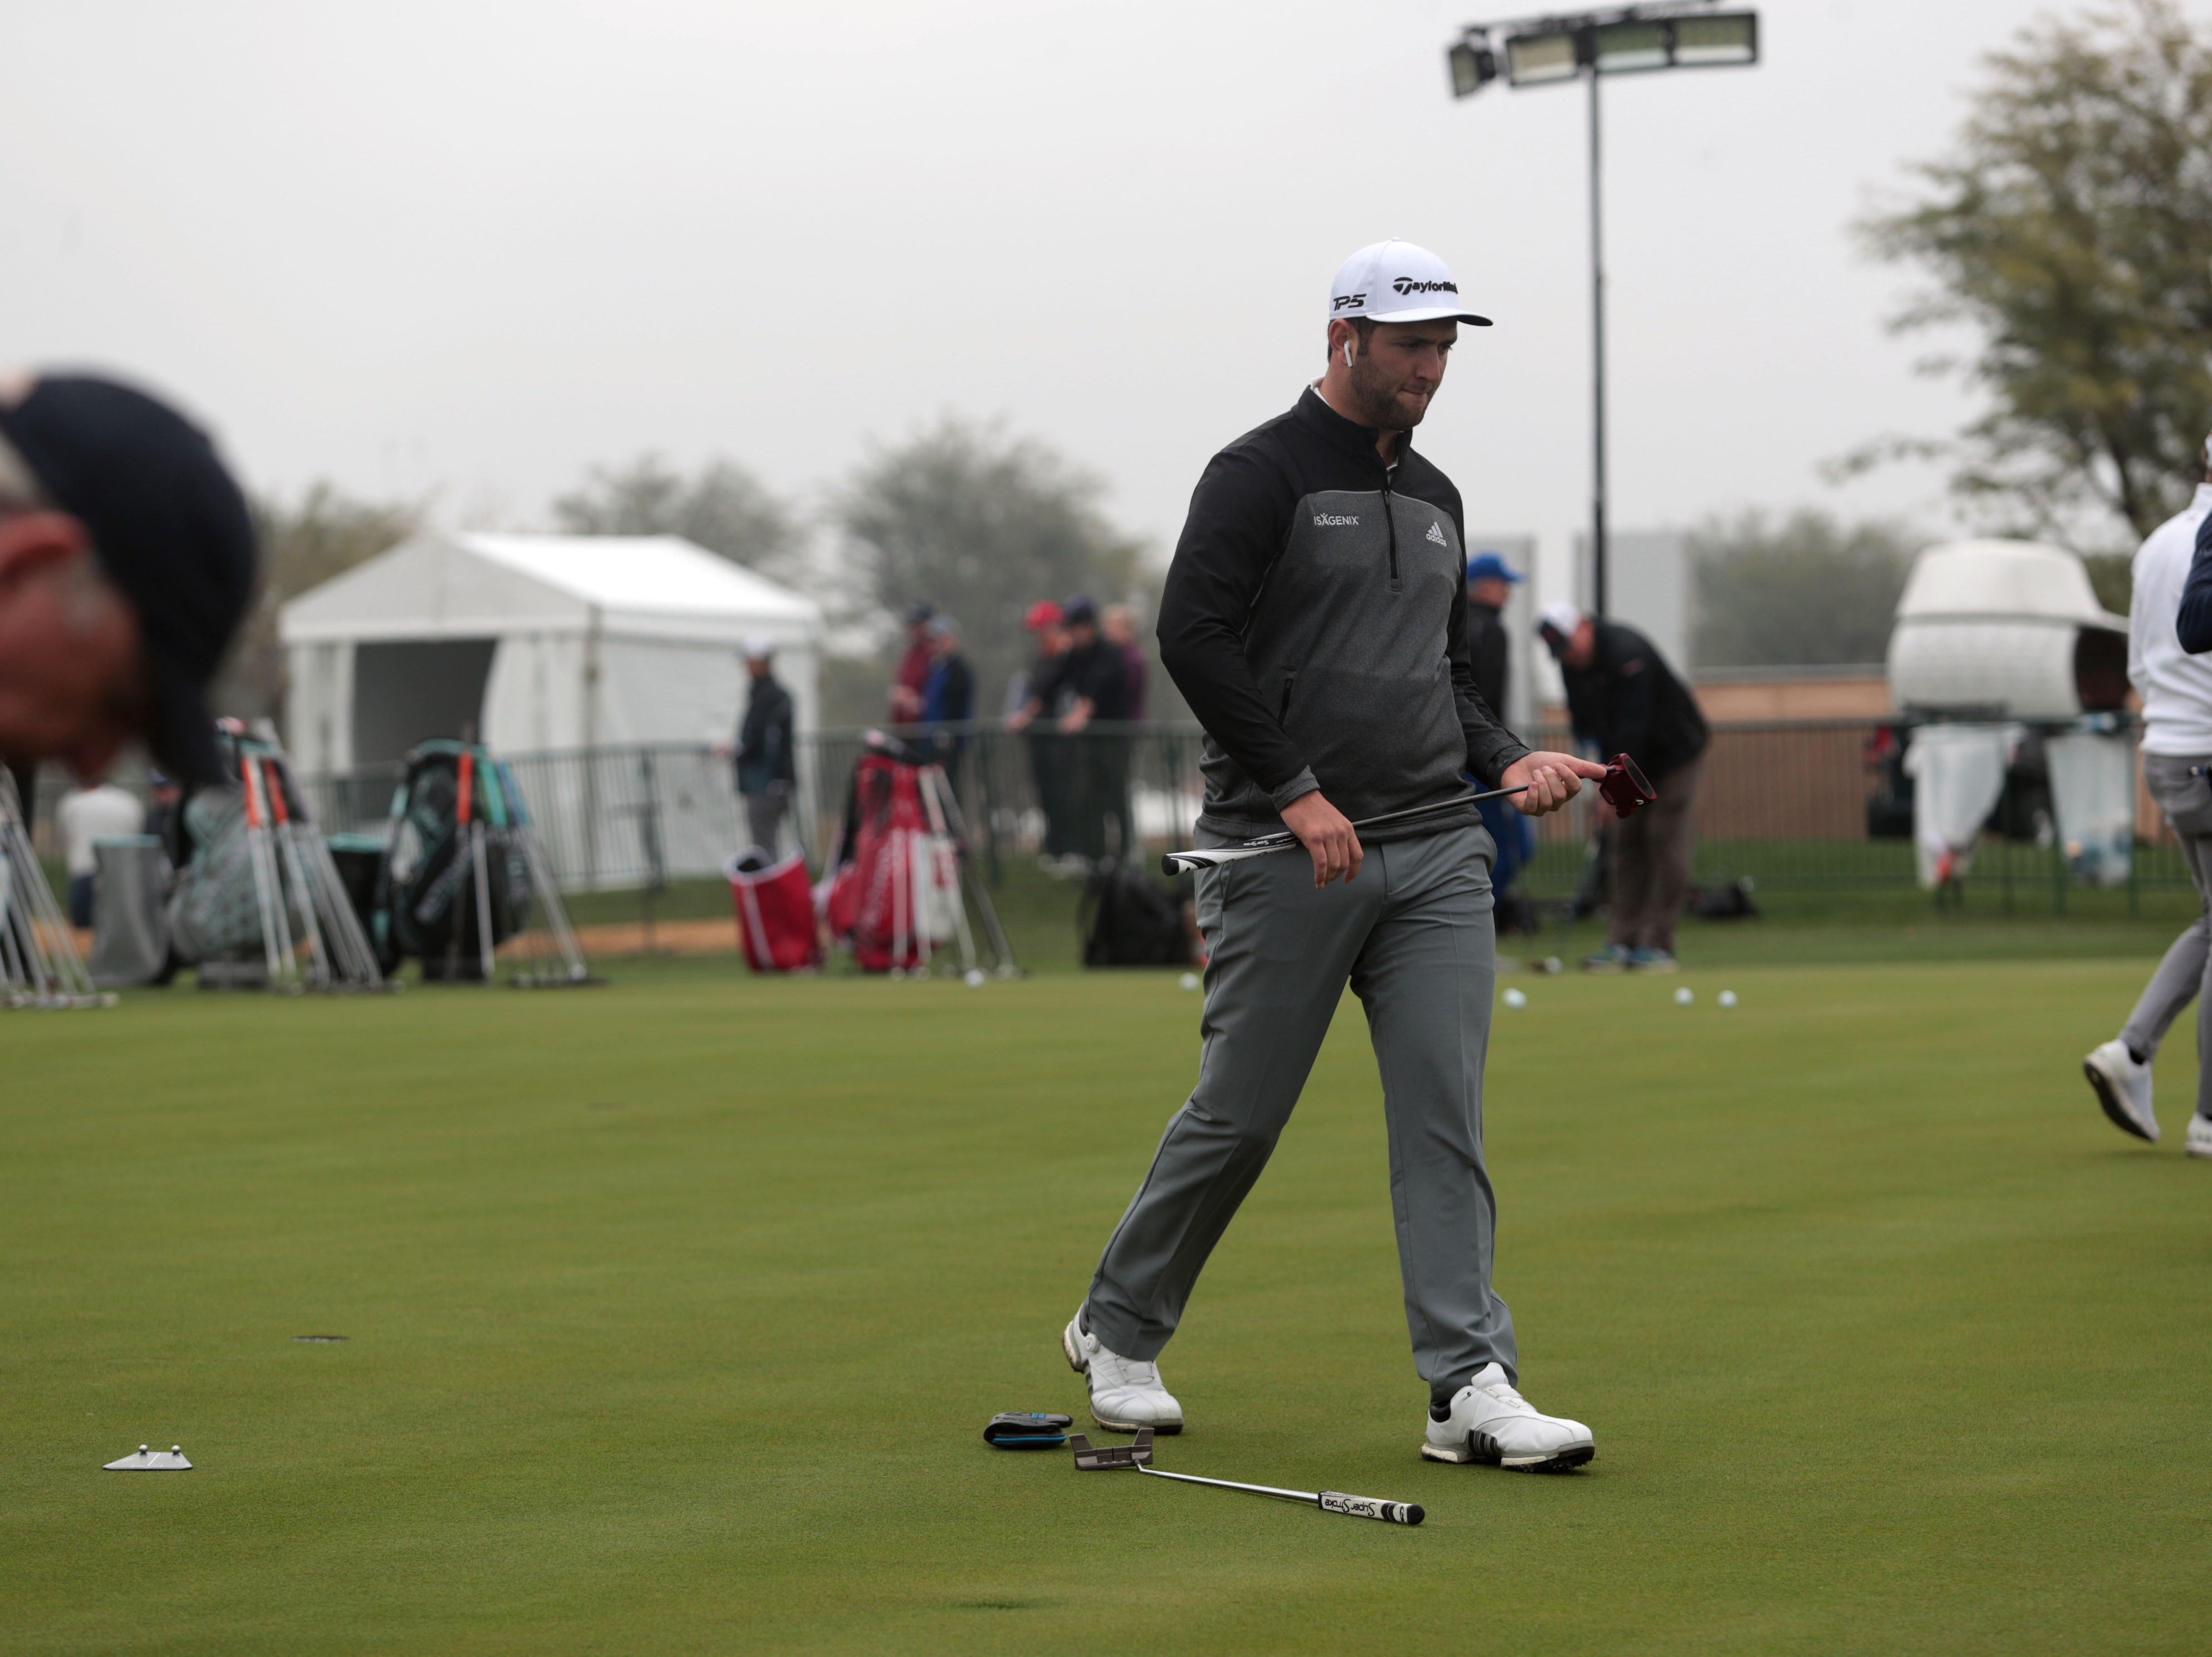 Jon Rahm on the putting green at the Desert Classic on Wednesday, January 16, 2019